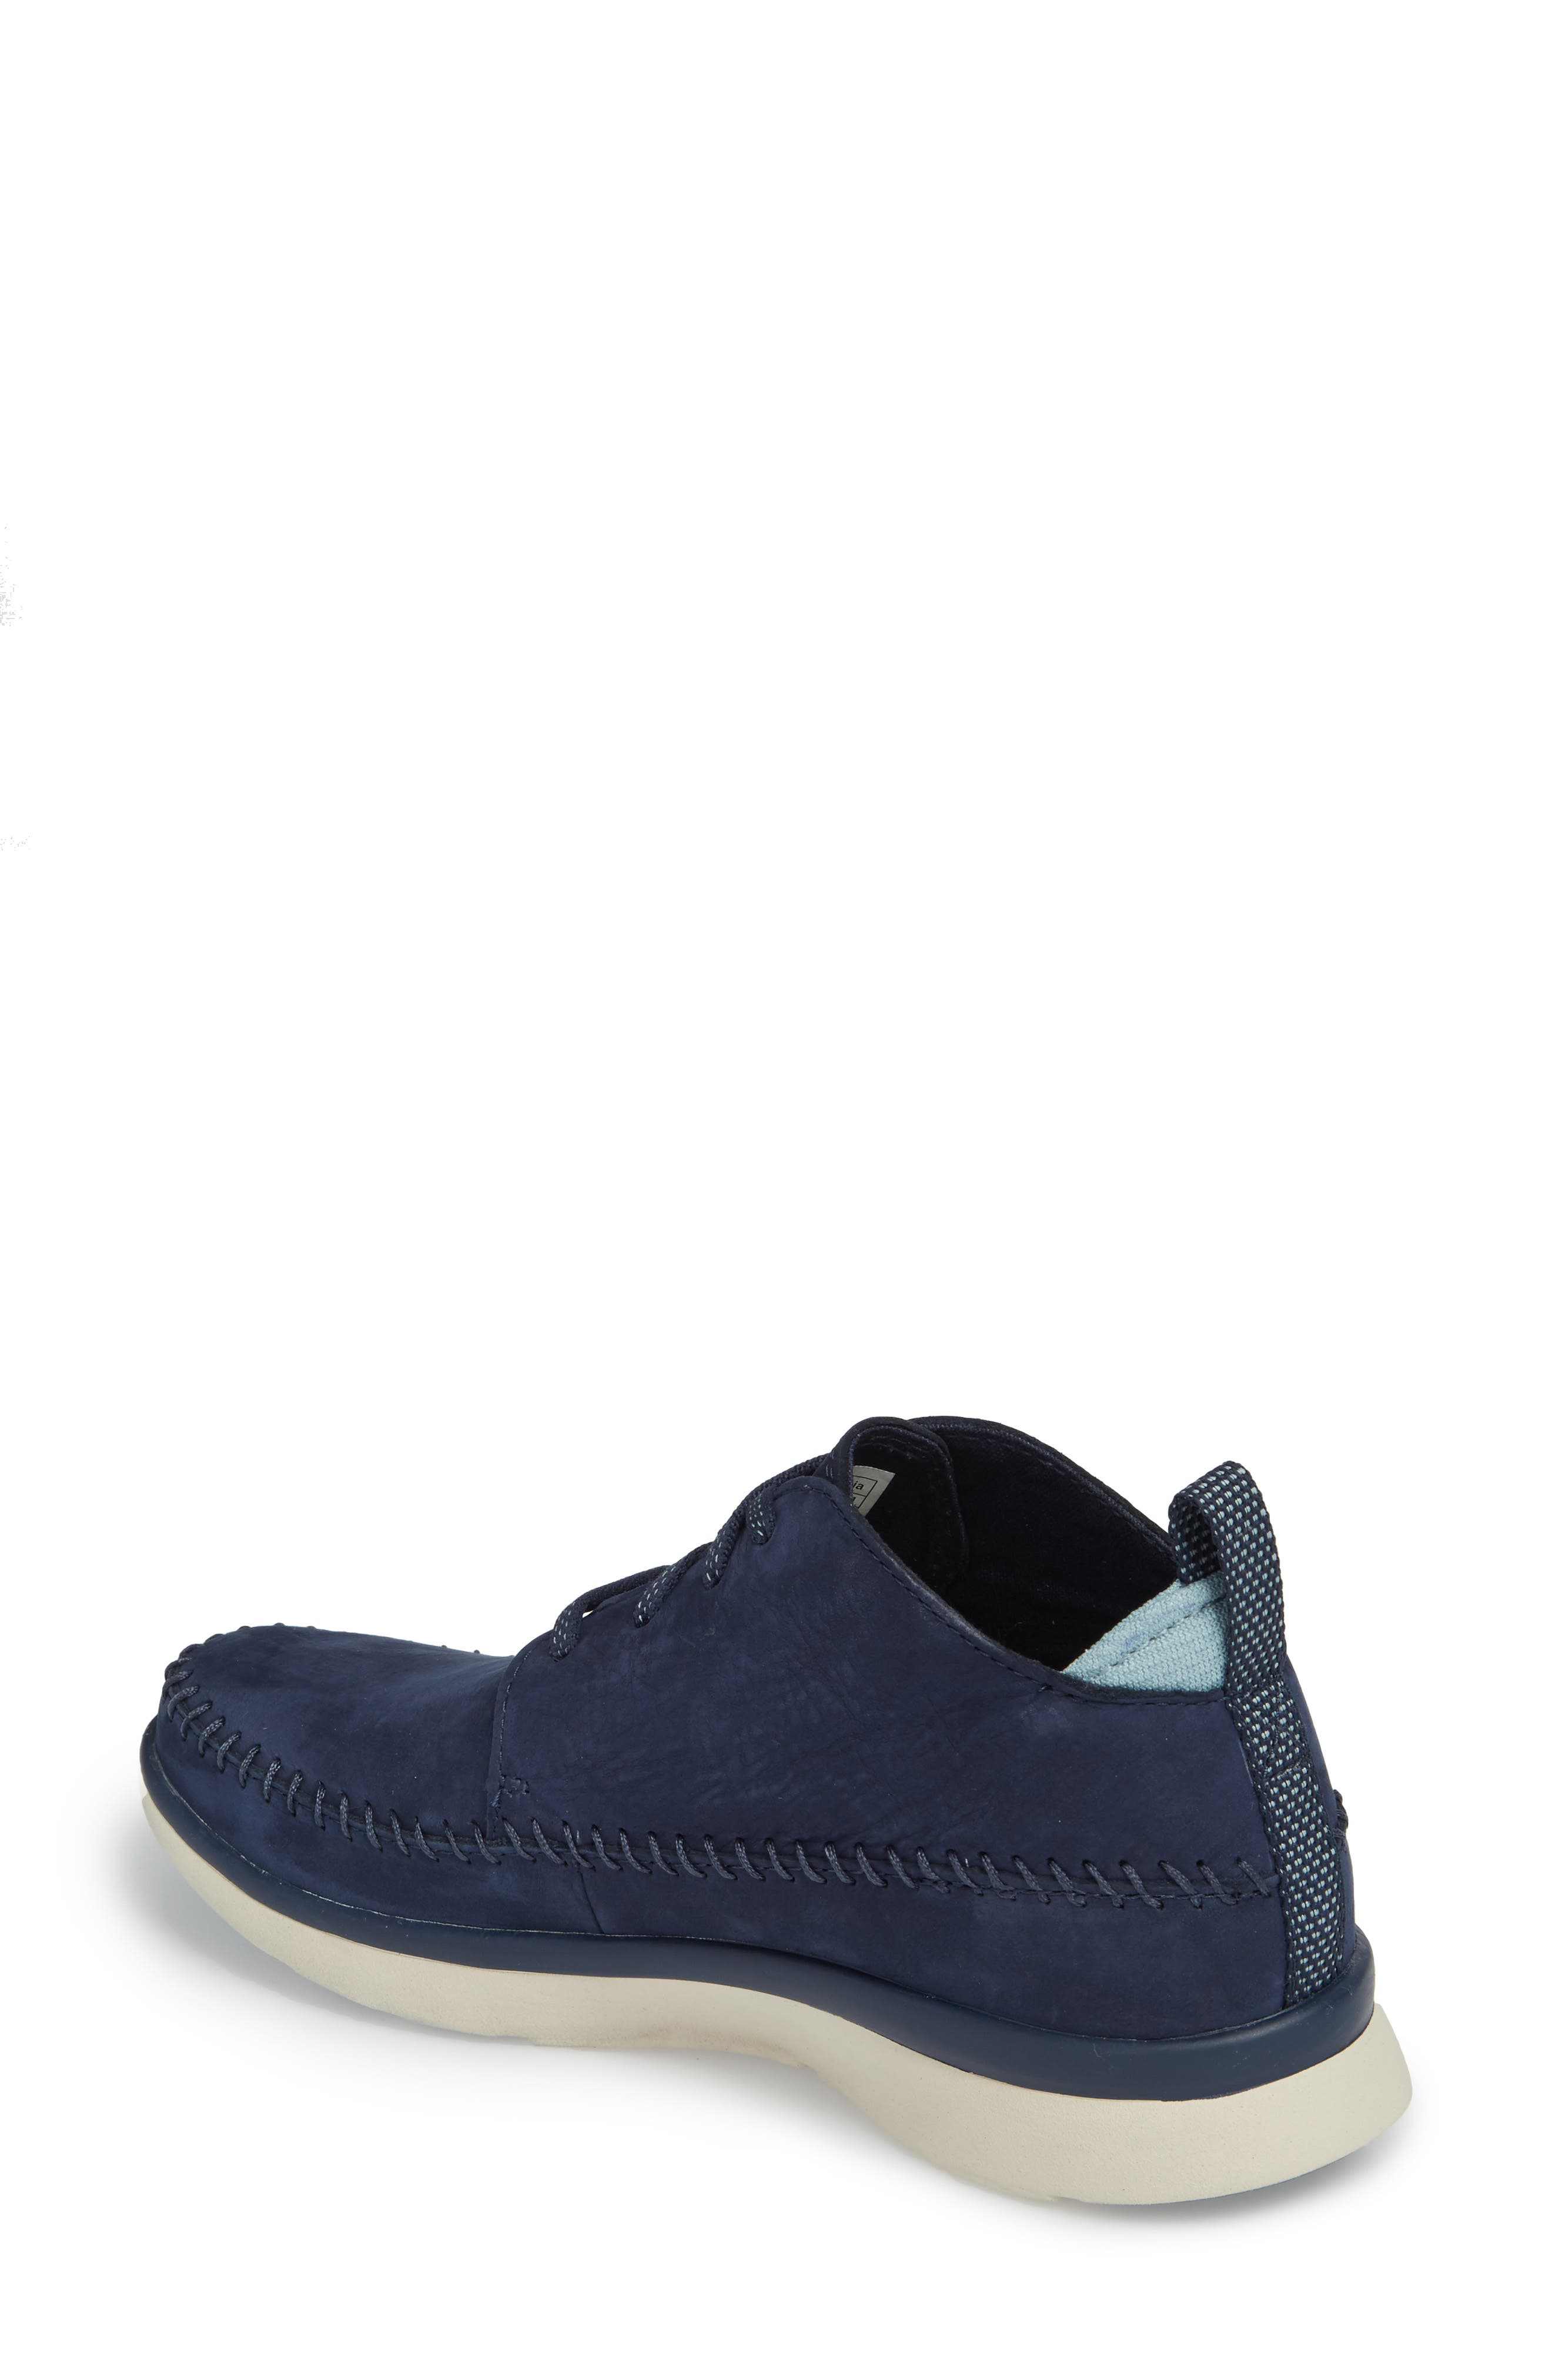 Olympia Lace-Up Sneaker,                             Alternate thumbnail 2, color,                             Blue Nubuck